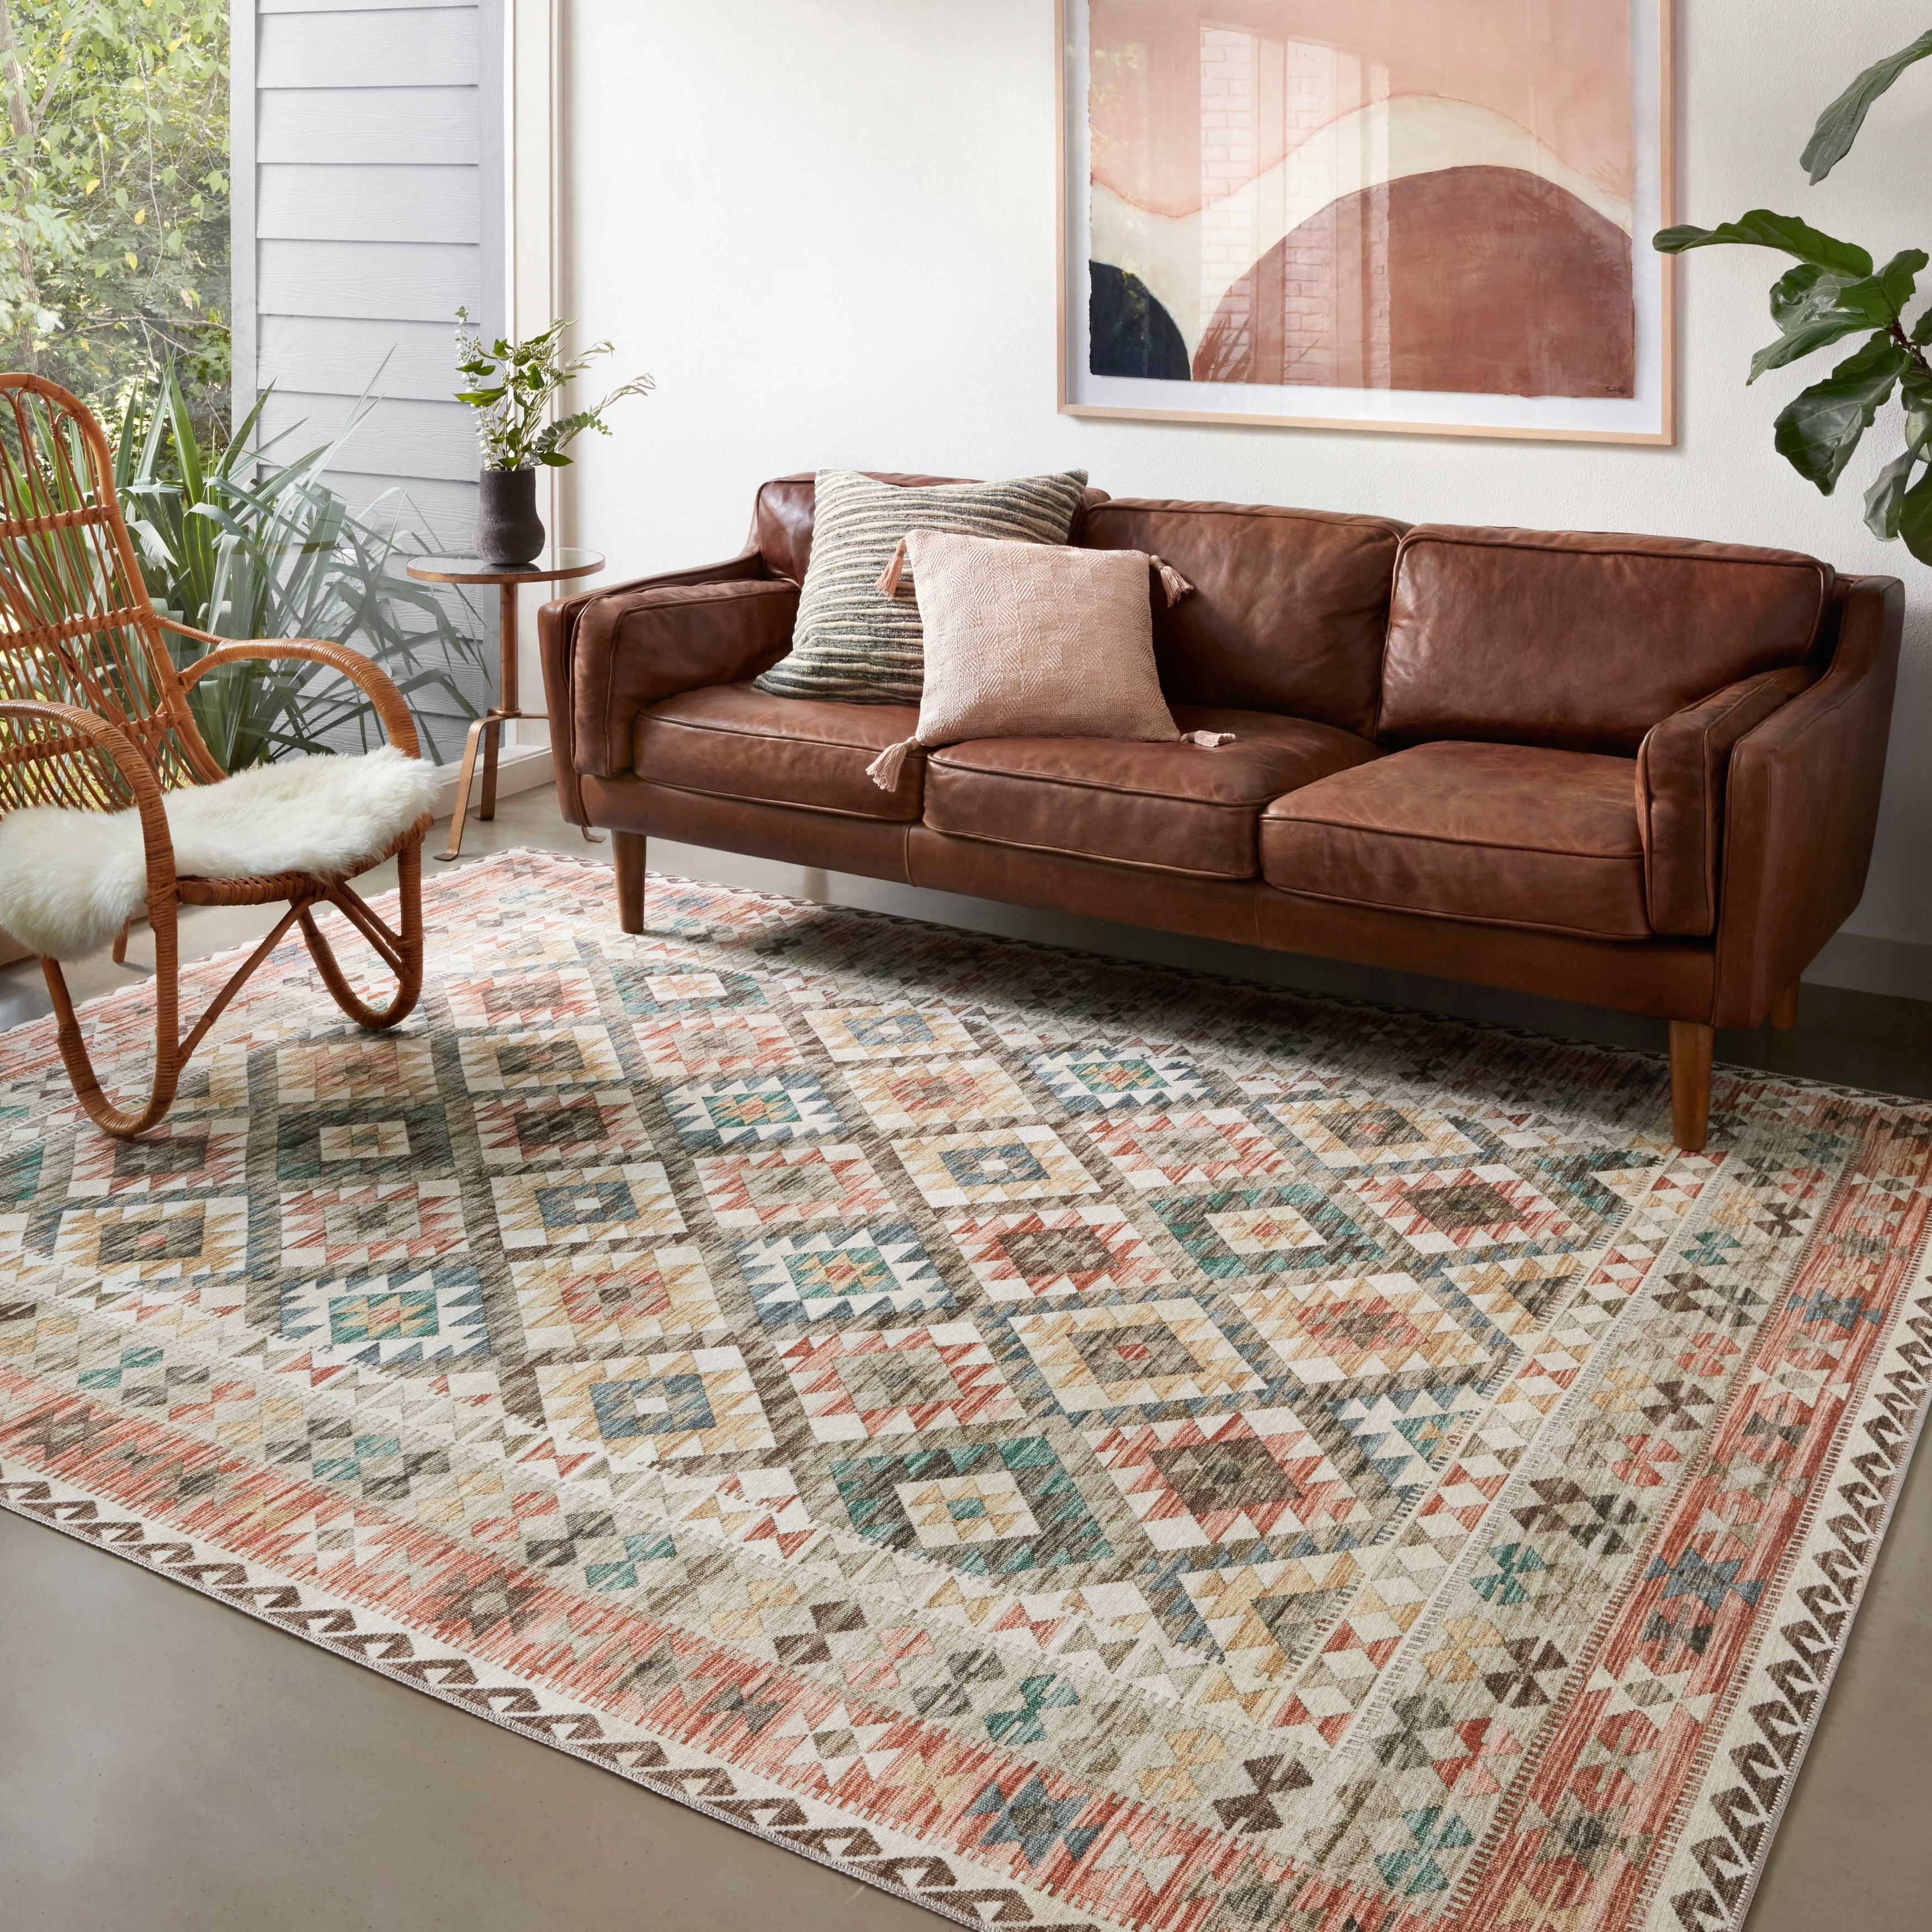 Shop For Alexander Home Escalante Southwestern Border Area Rug Get Free Delivery On Everything At Overstock Your Online Home Decor Store Get 5 In Rewards With Club O 32591201